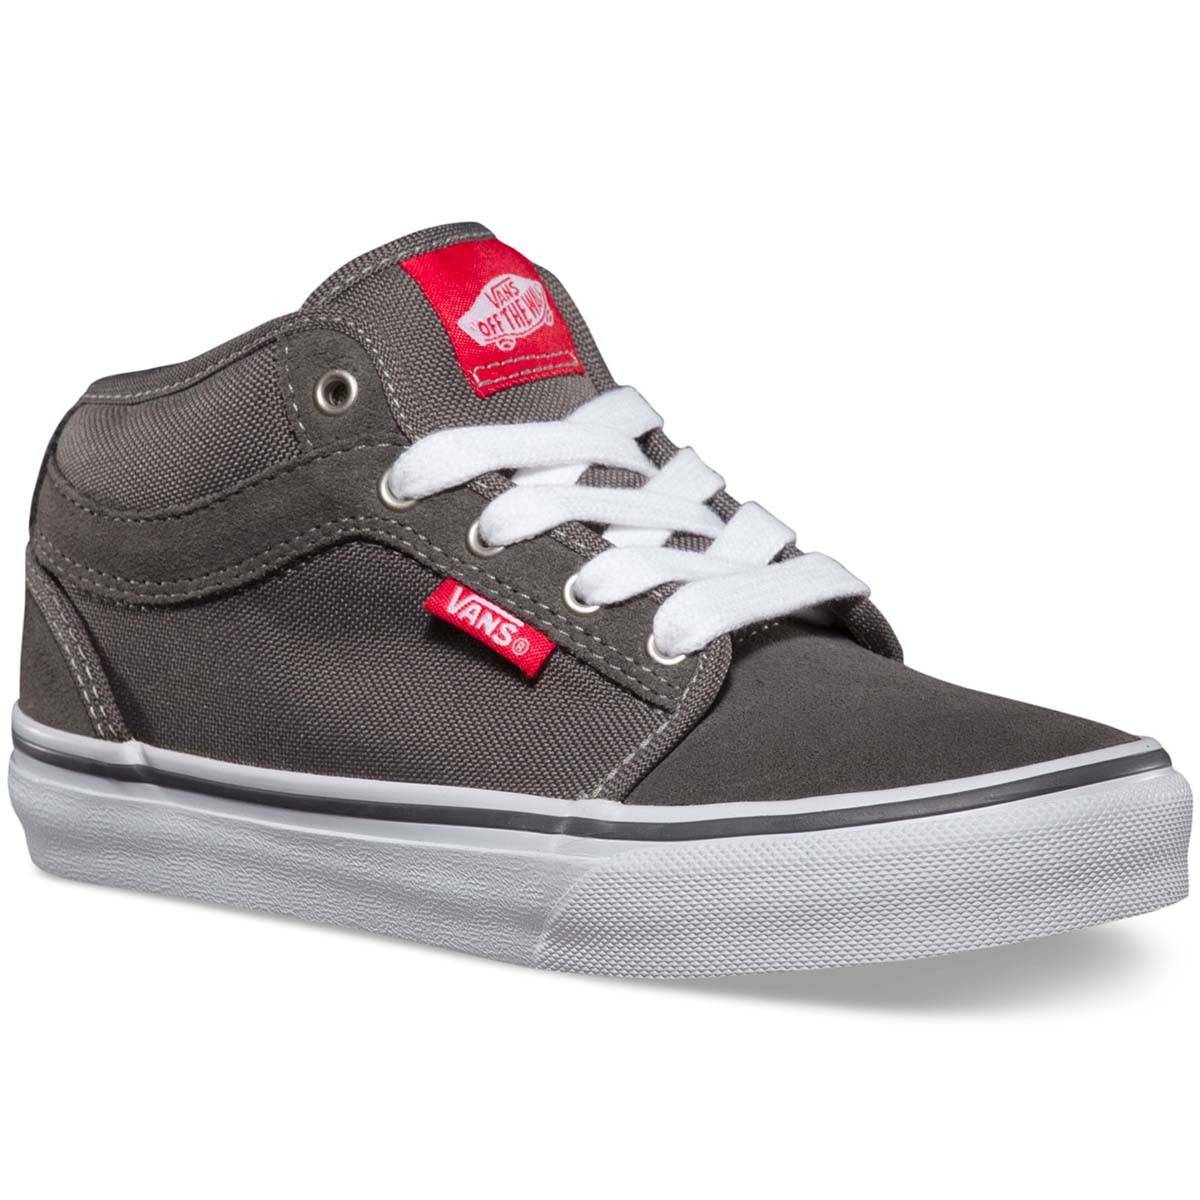 Vans Chukka Mid Youth Shoes - Pewter/Neon Red - 7.0